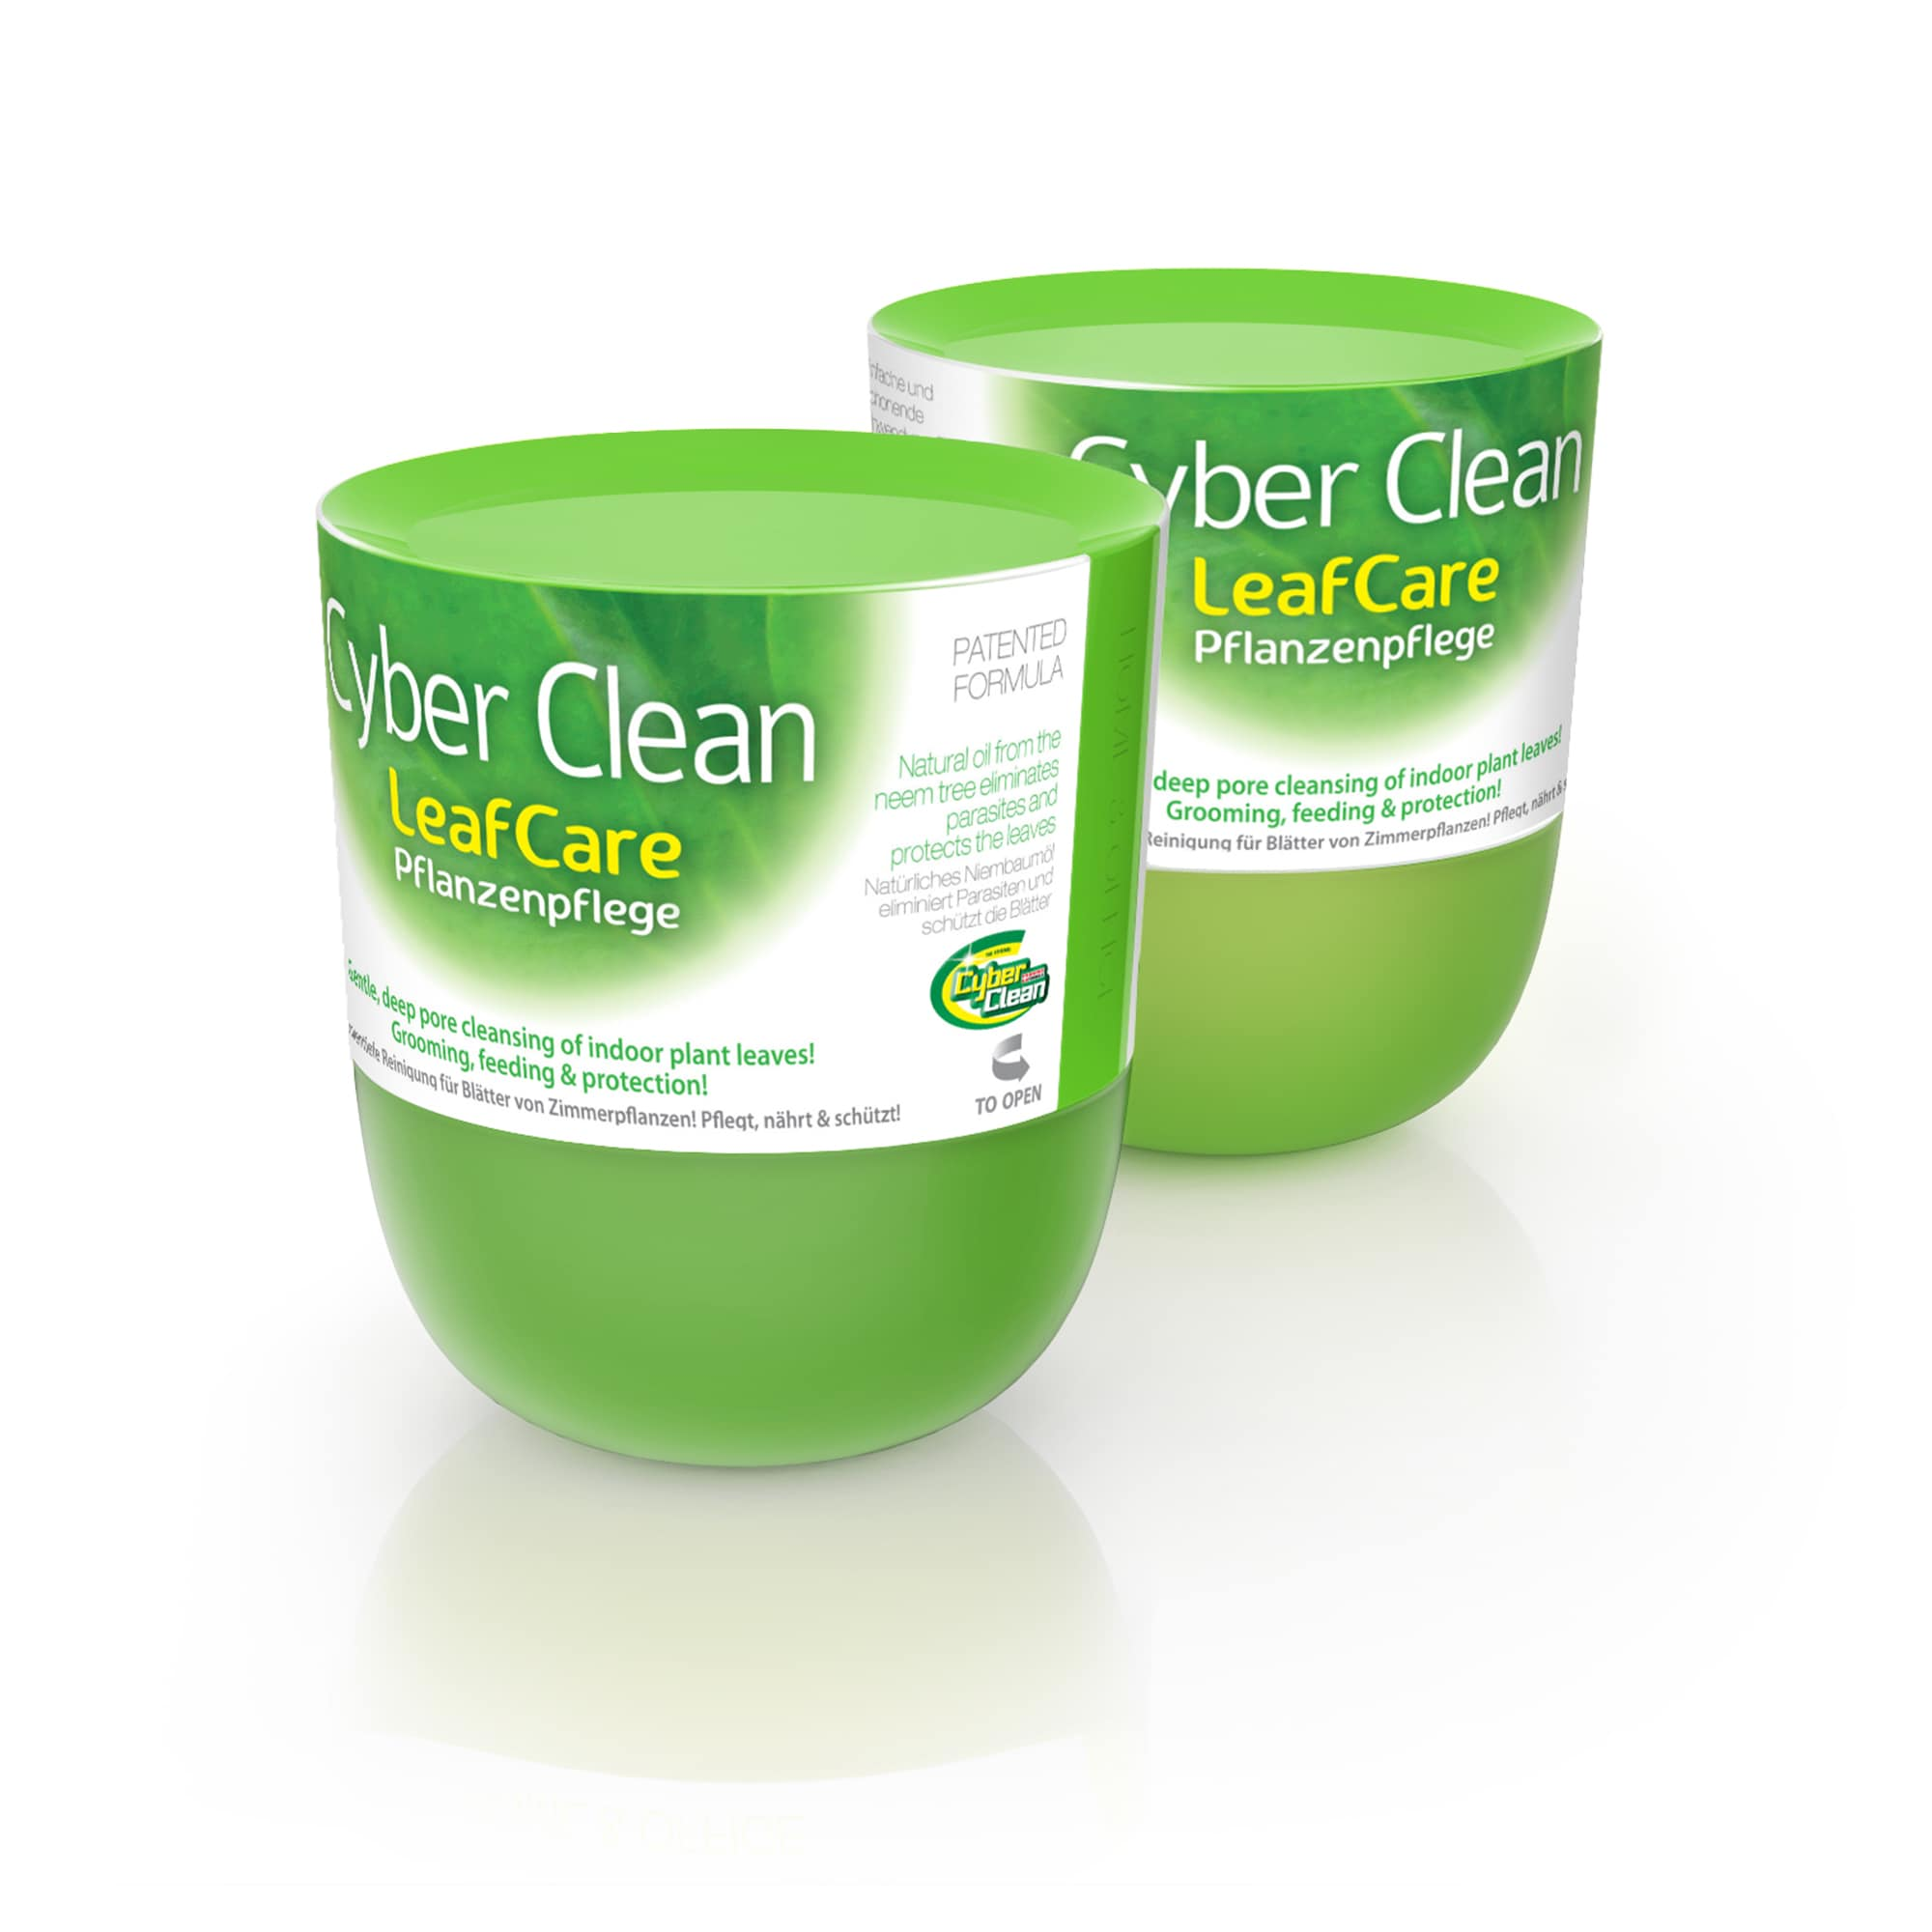 Cyber Clean LeafCare Cup 160 grams